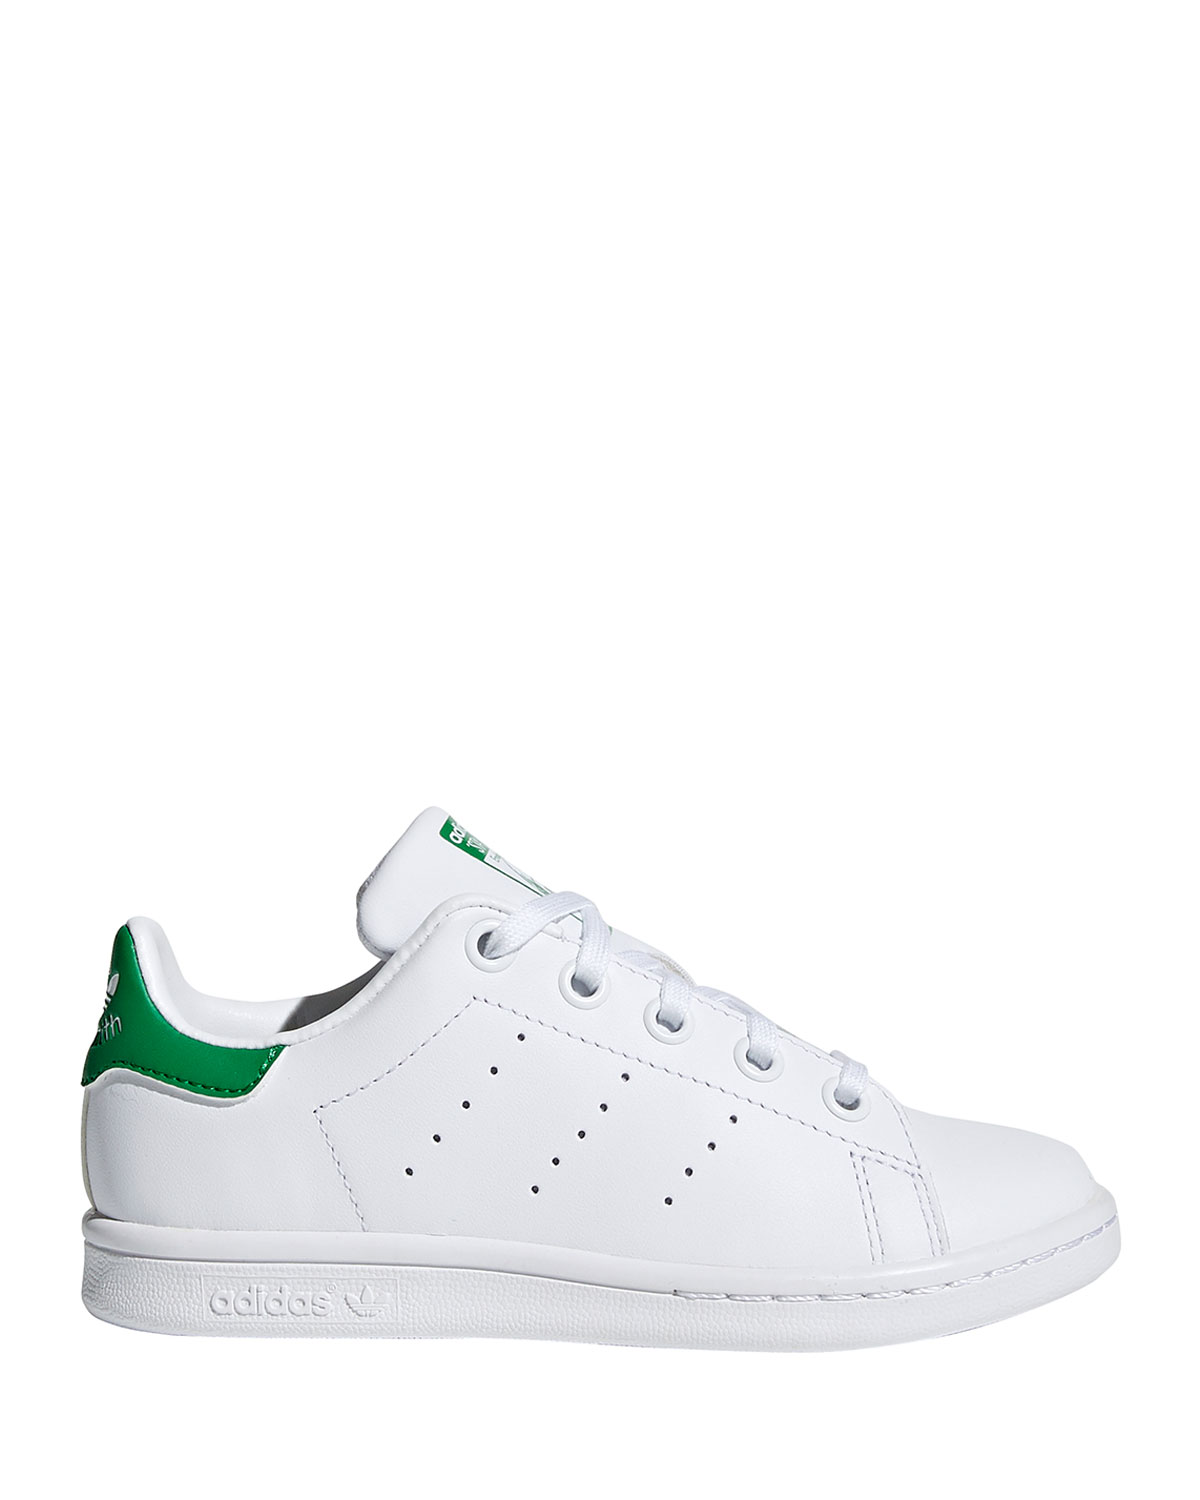 newest ffc29 f56cf Kids' Stan Smith Classic Sneakers, Toddler/Kids